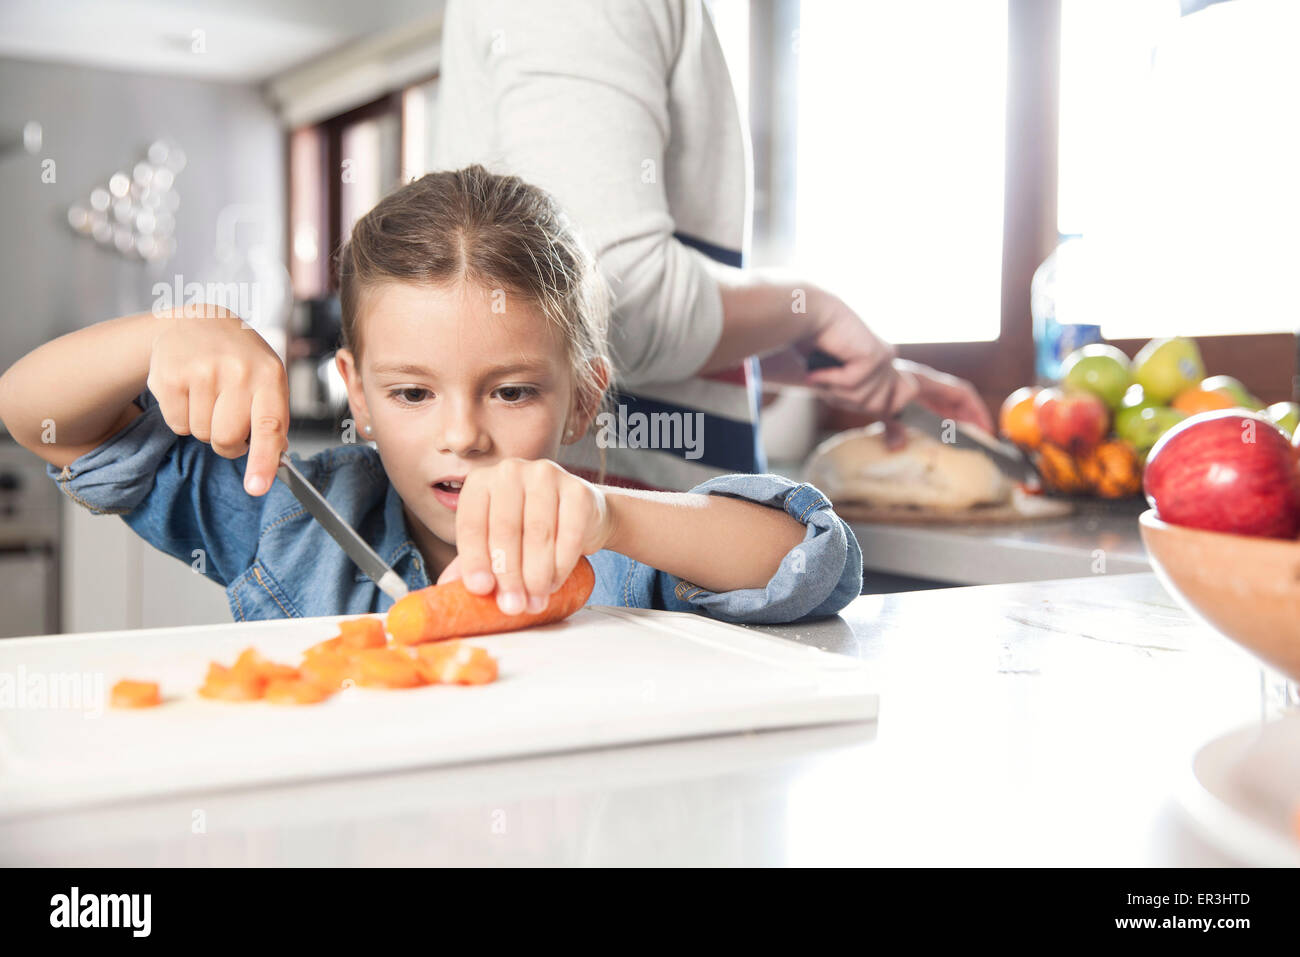 Little girl helping to prepare food in kitchen - Stock Image